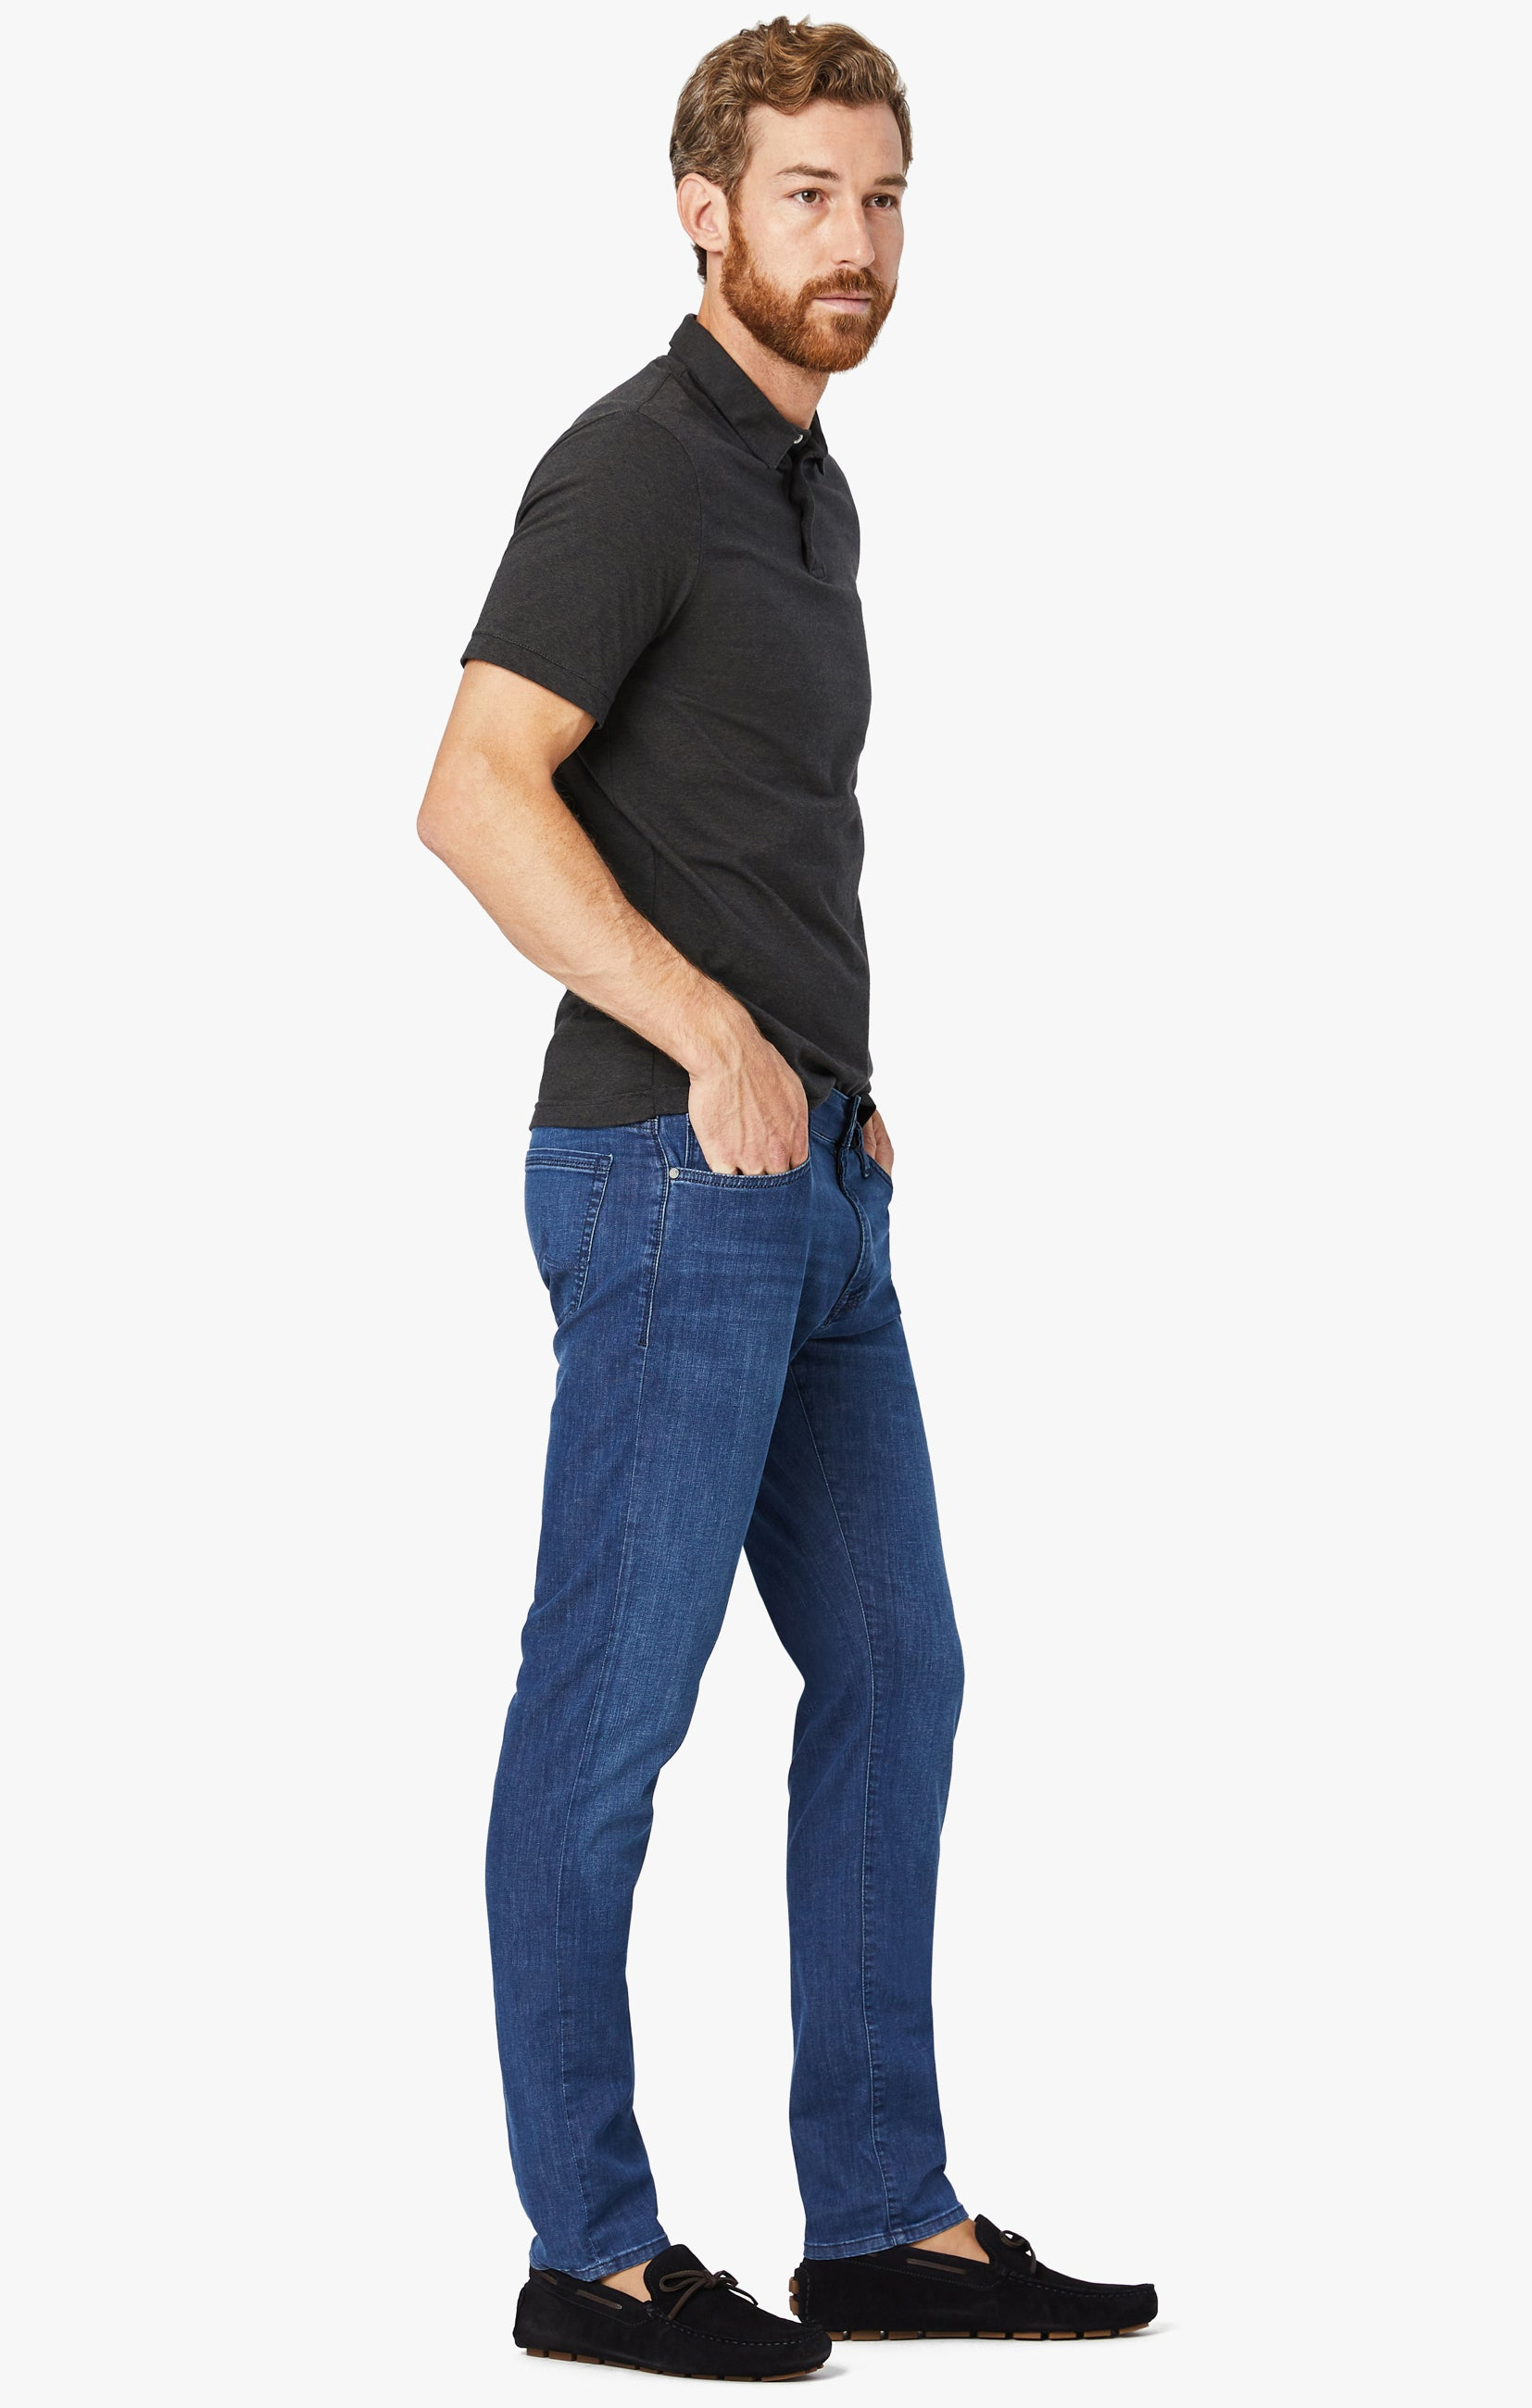 Cool Tapered Leg Jeans In Mid Kona Image 10